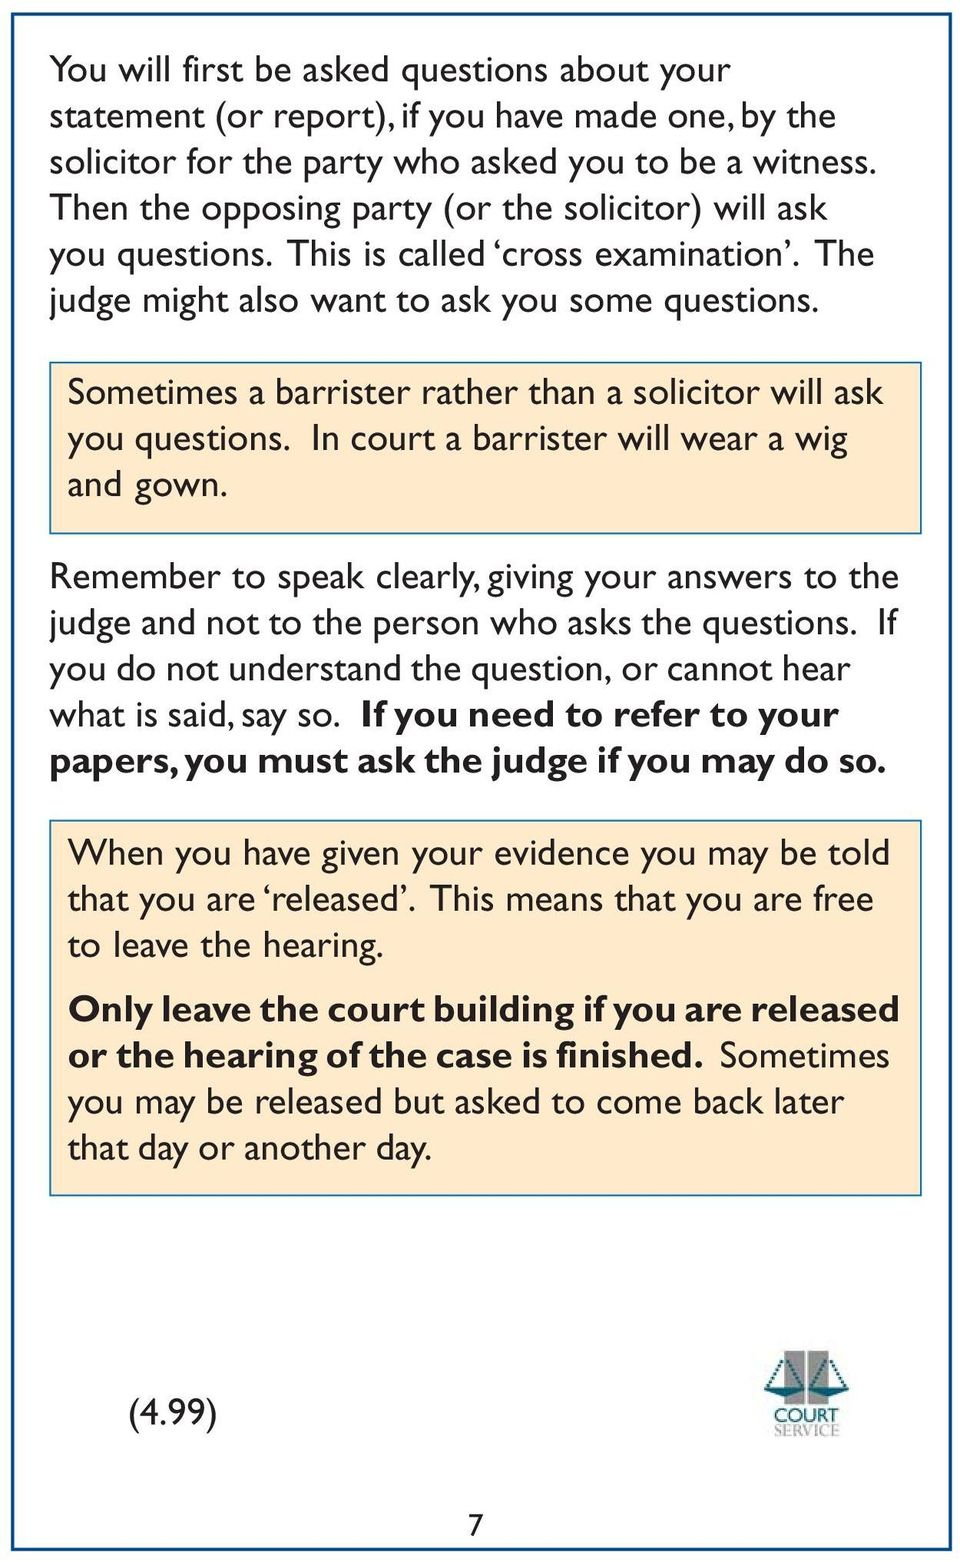 Sometimes a barrister rather than a solicitor will ask you questions. In court a barrister will wear a wig and gown.